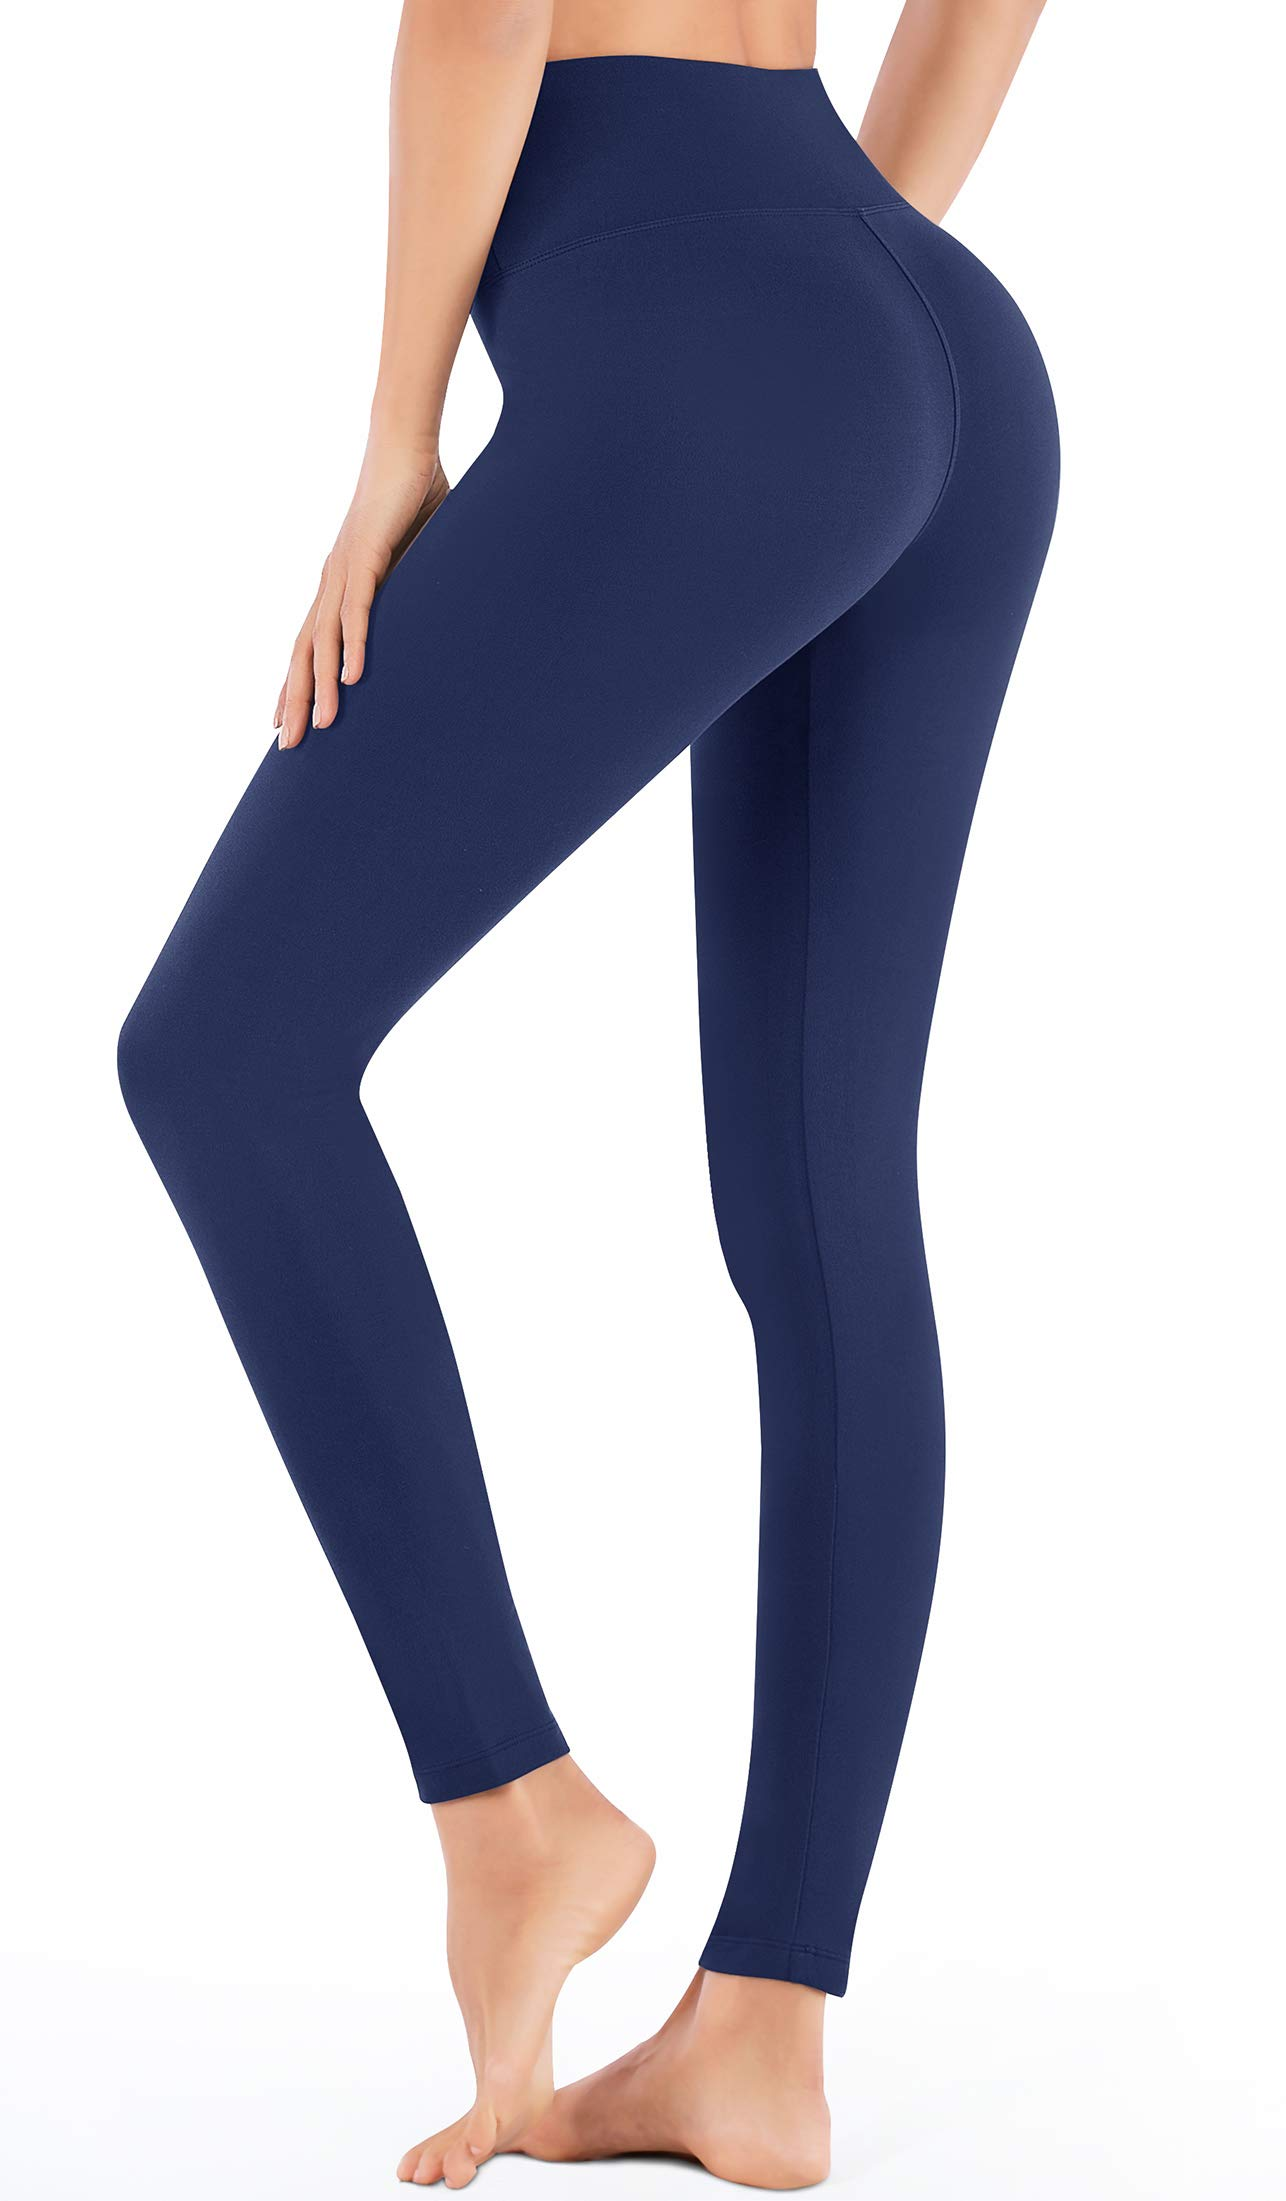 IUGA High Waisted Leggings with Inner Pocket, Non See-Through Workout Stretch Leggings for Women (Dark Blue 890 Pants, X-Small)